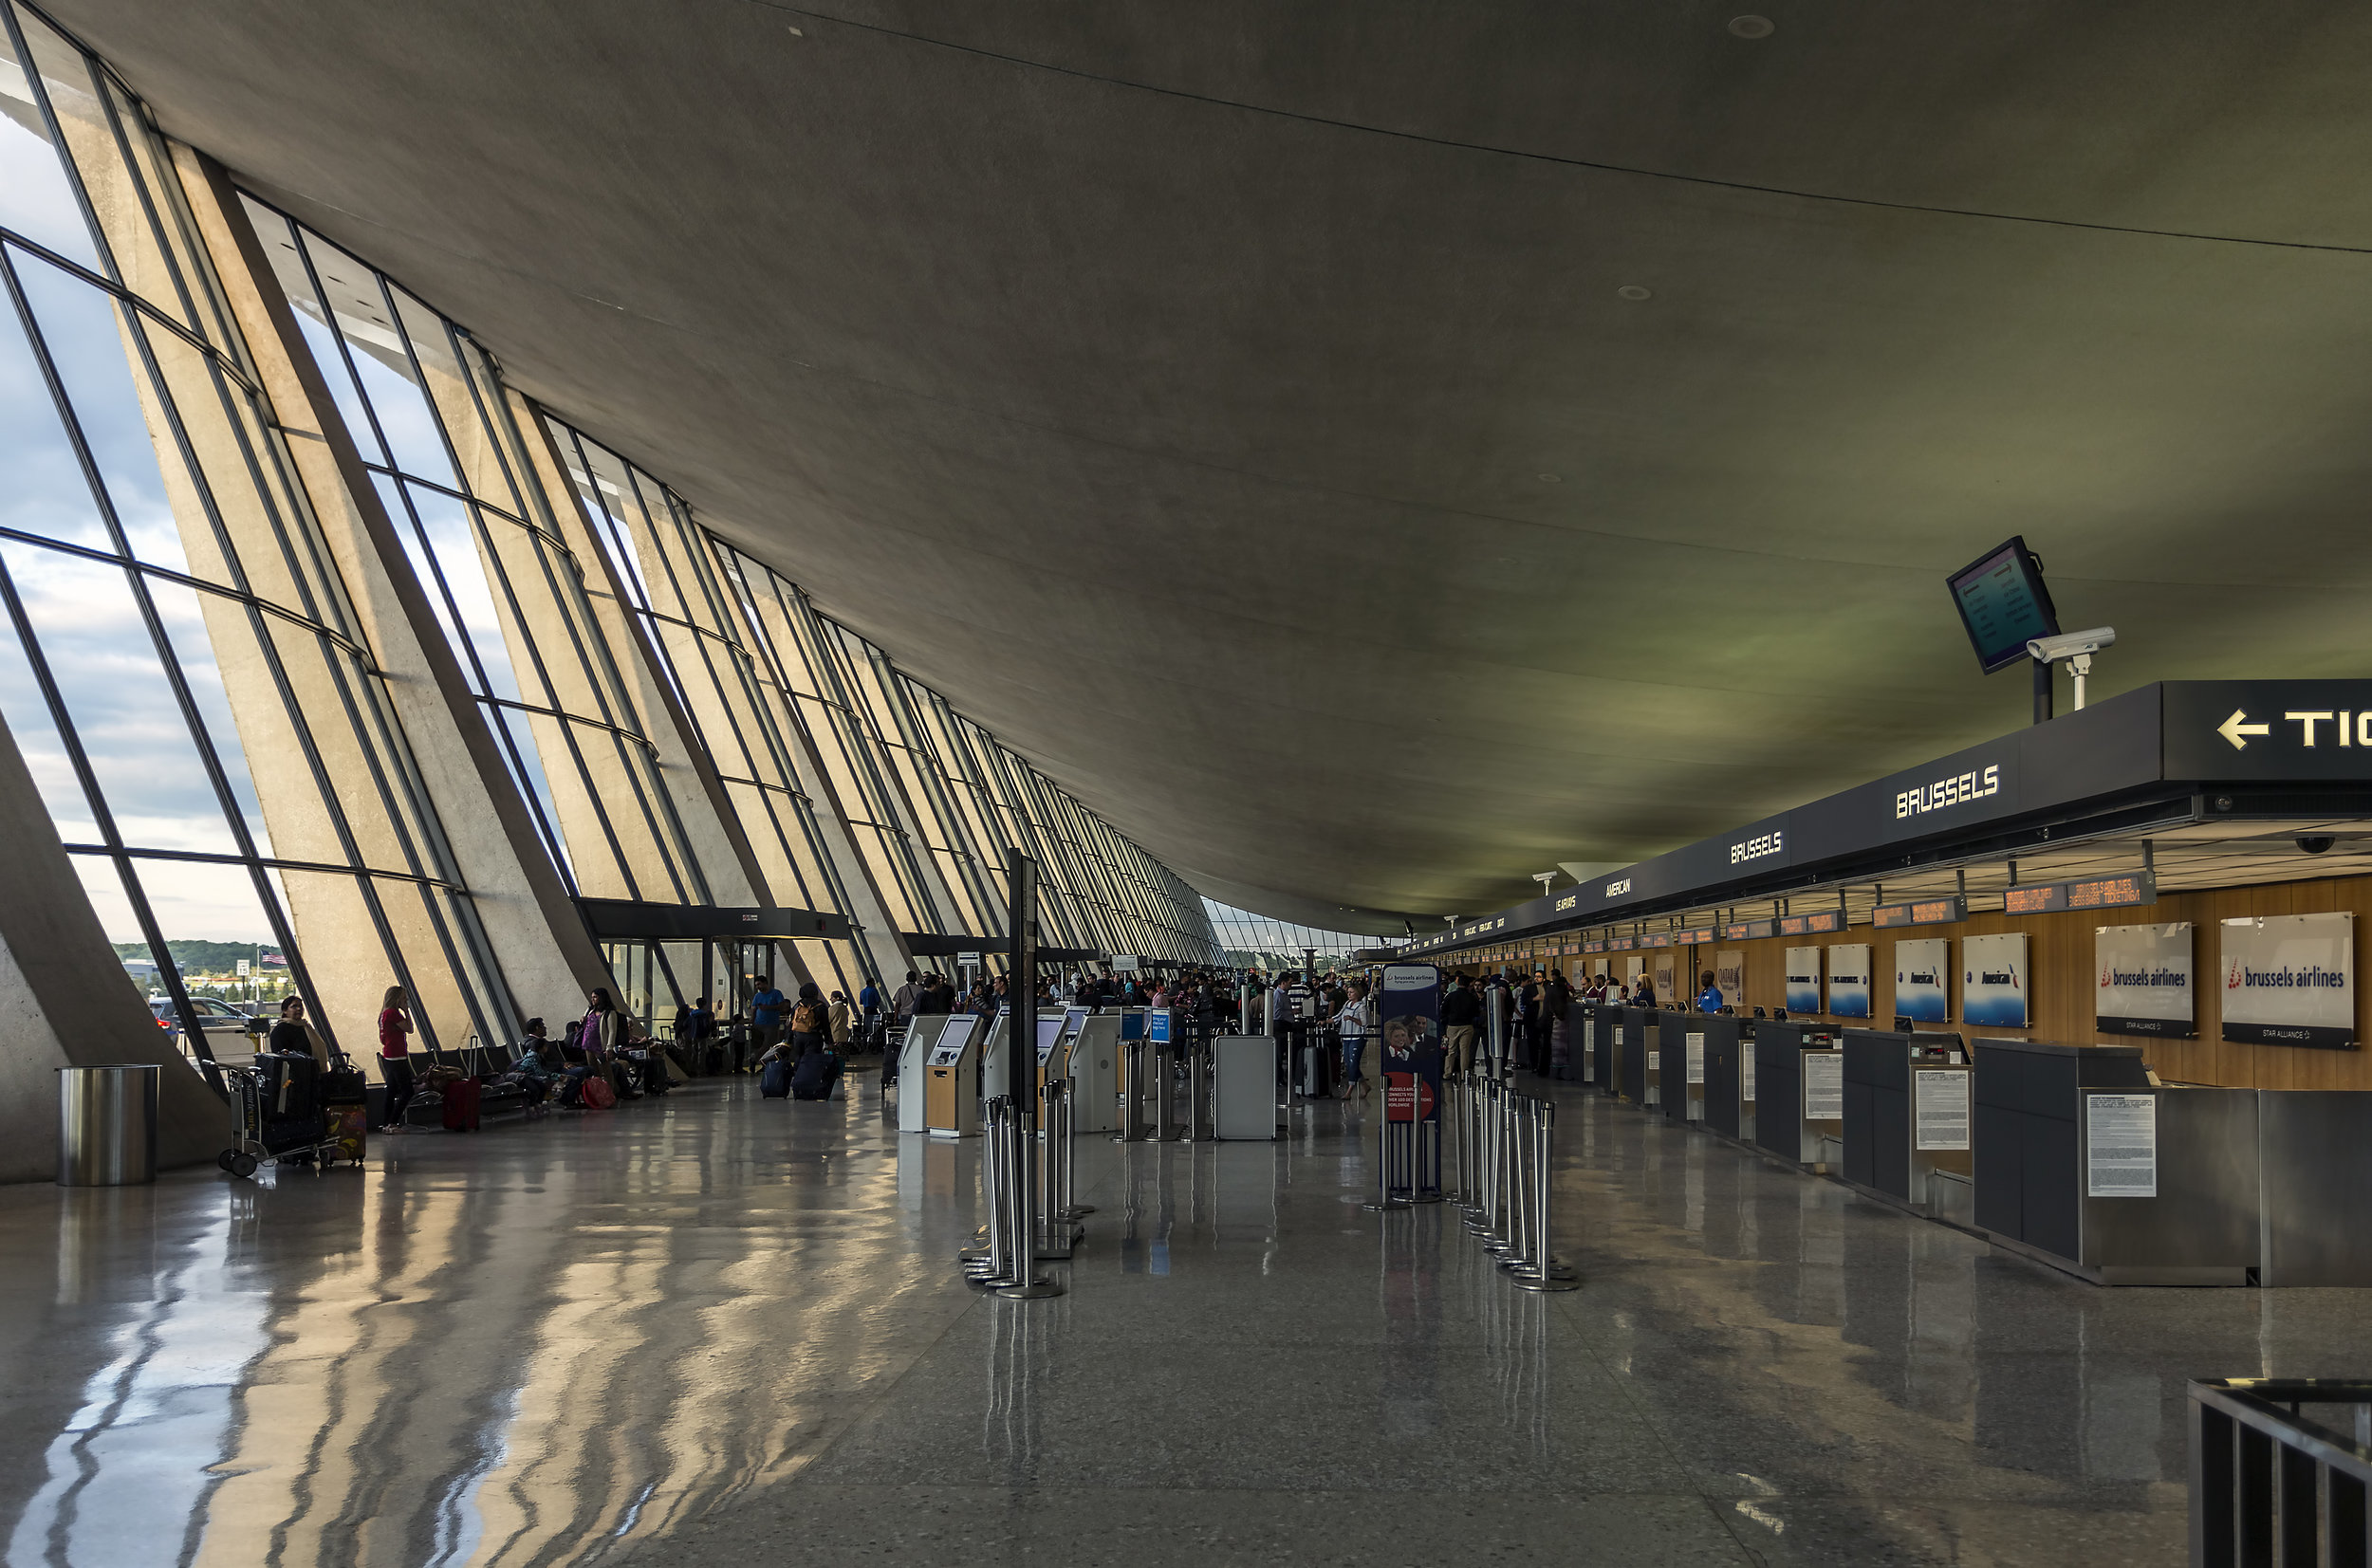 Dulles terminal interior. ( Photo by Acroterion , via Wikimedia Commons,CC BY-SA 3.0)